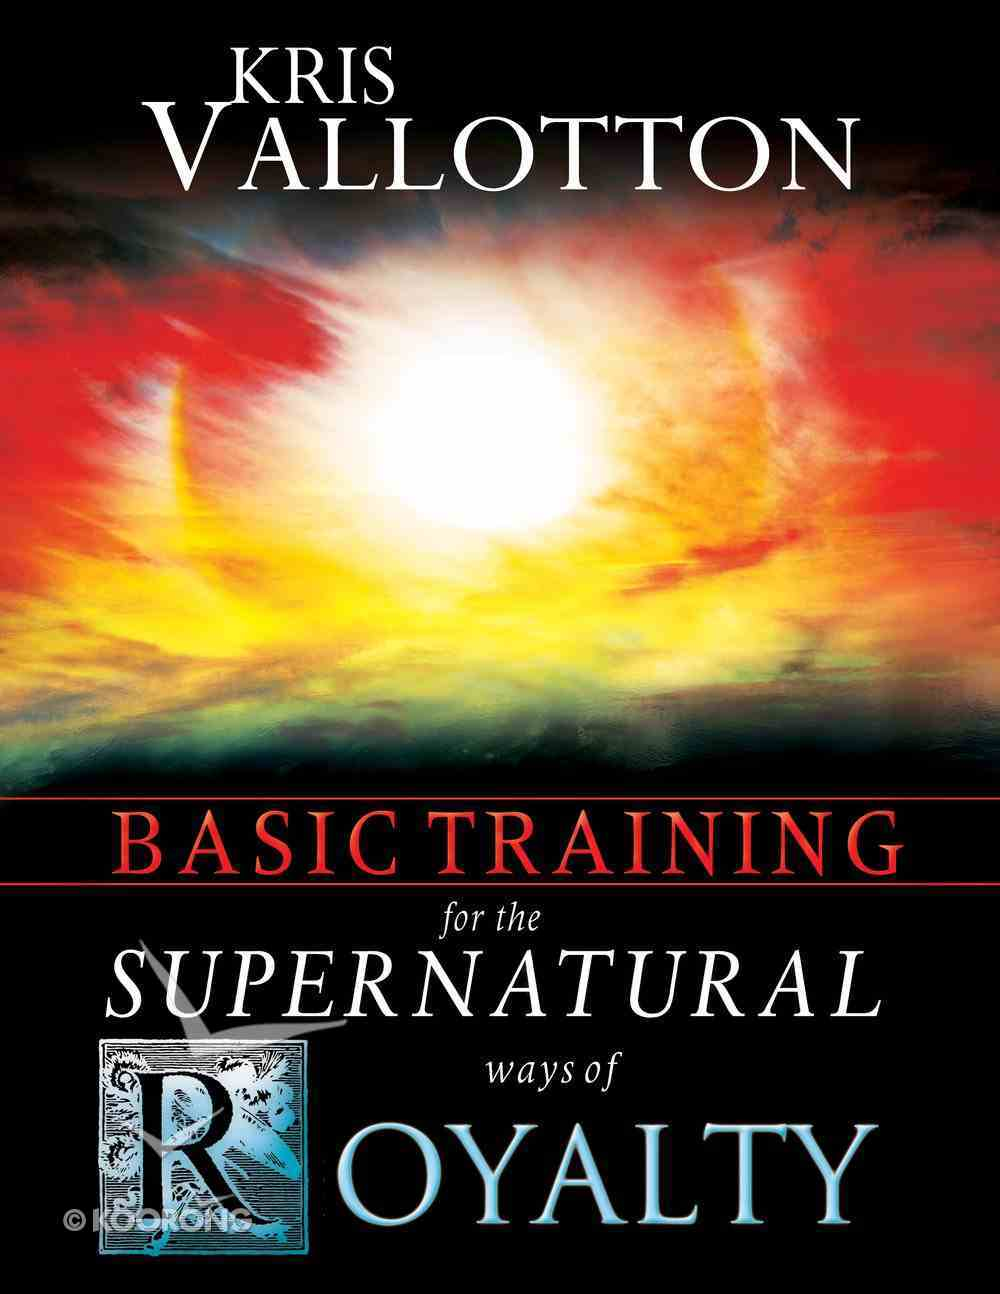 Basic Training For the Supernatural Ways of Royalty Interactive Manual Paperback